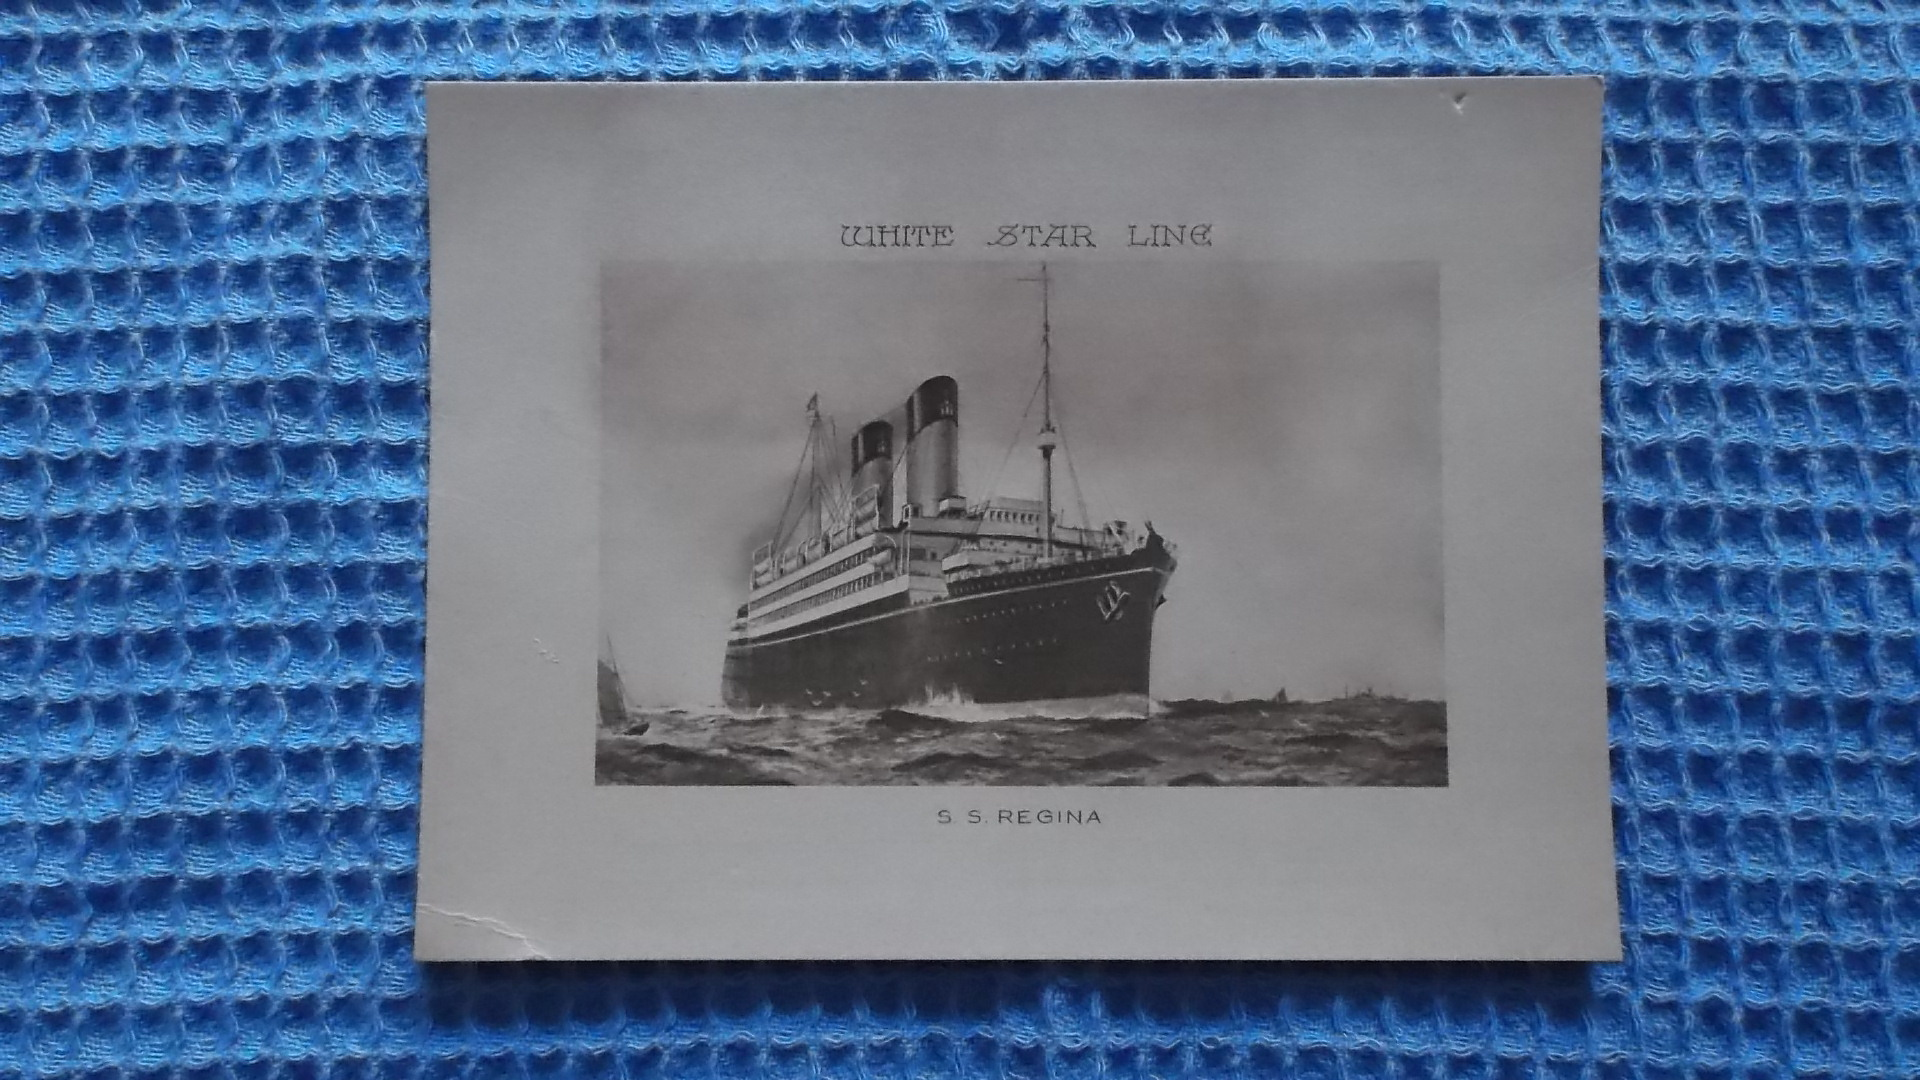 ABSTRACT OF LOG CARD FROM THE WHITE STAR LINE VESSEL THE SS REGINA